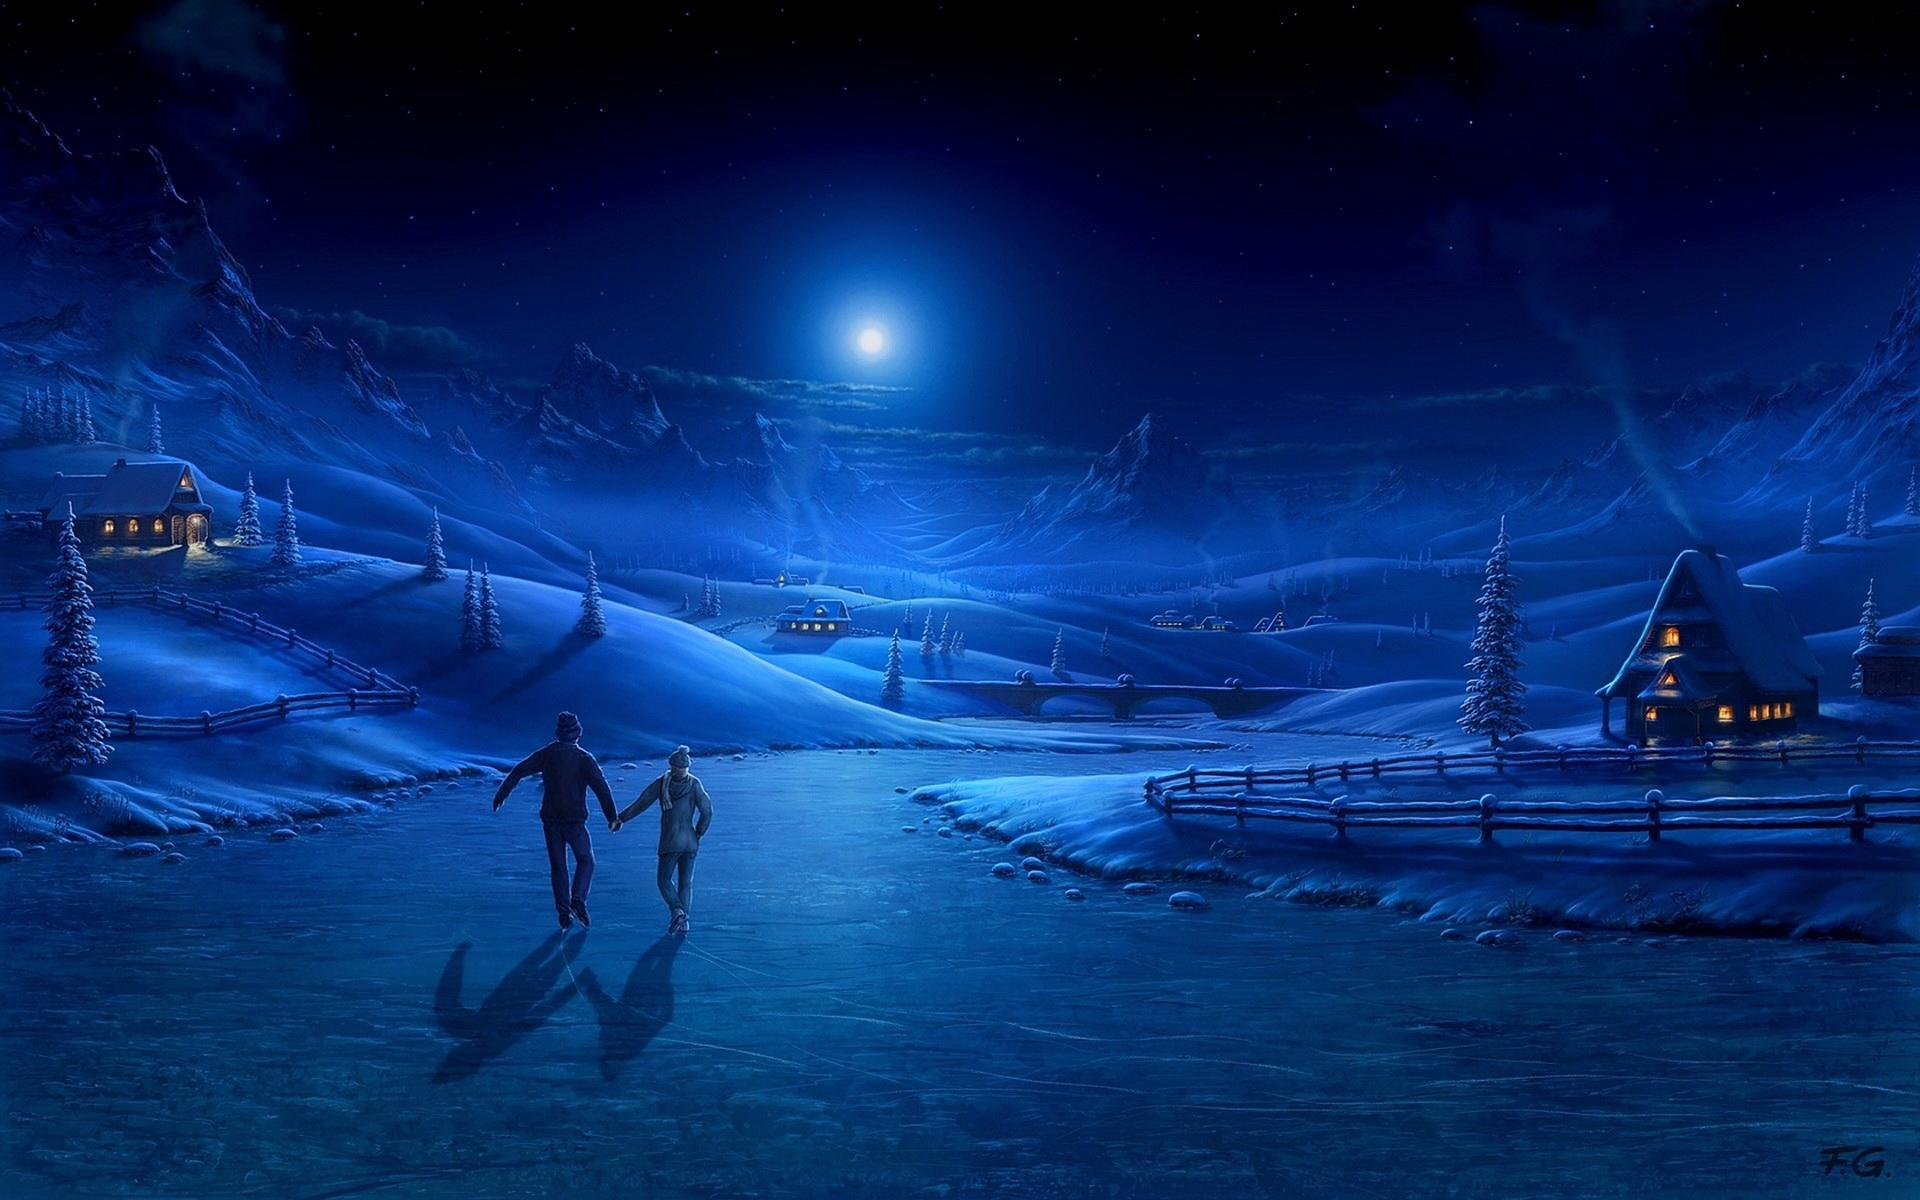 night-ice-pair-light-moon-skating-rink-art-lodge-smoke